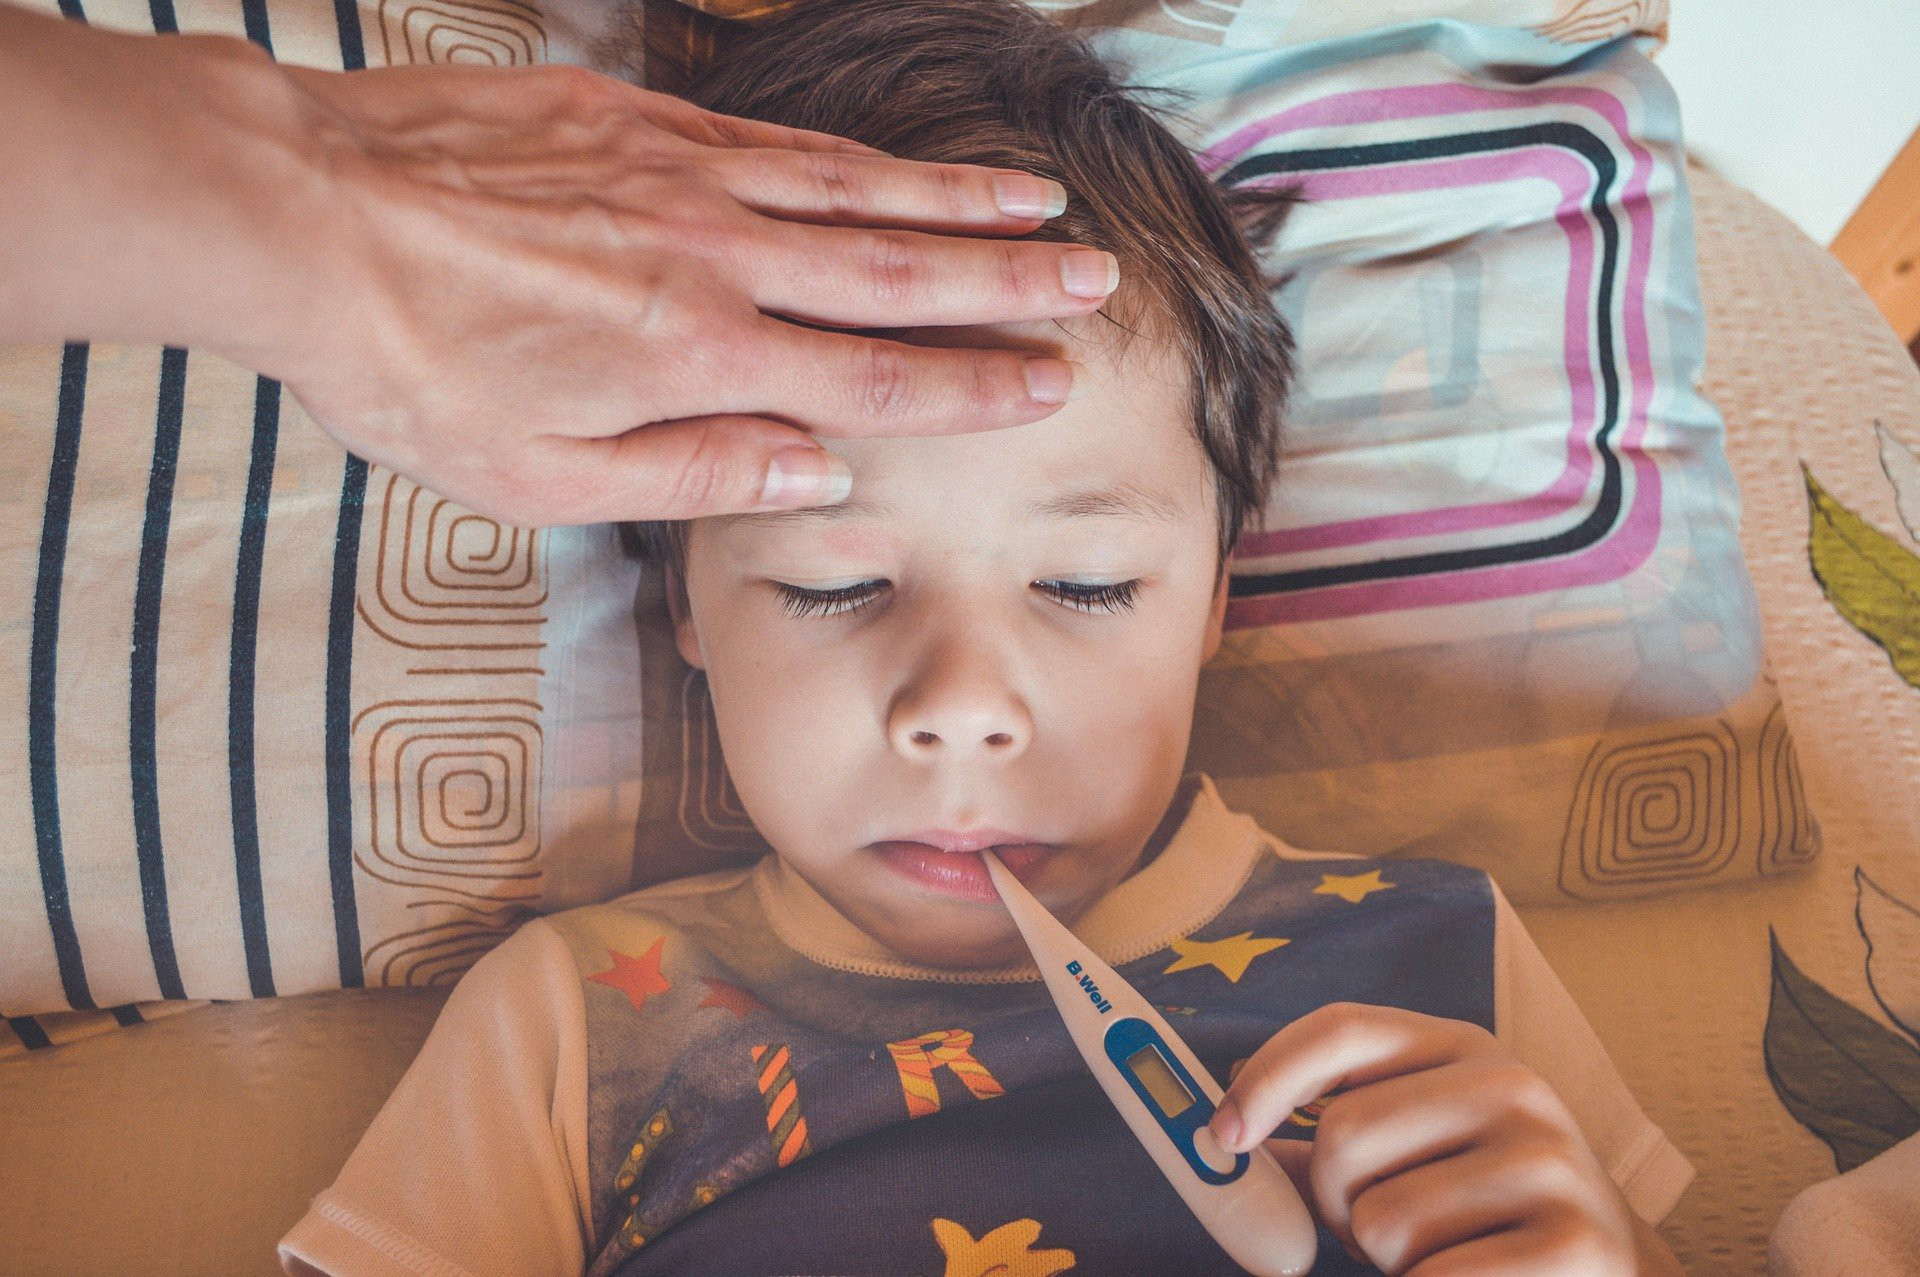 Child in bed with thermometer. Mom's hand on his forehead